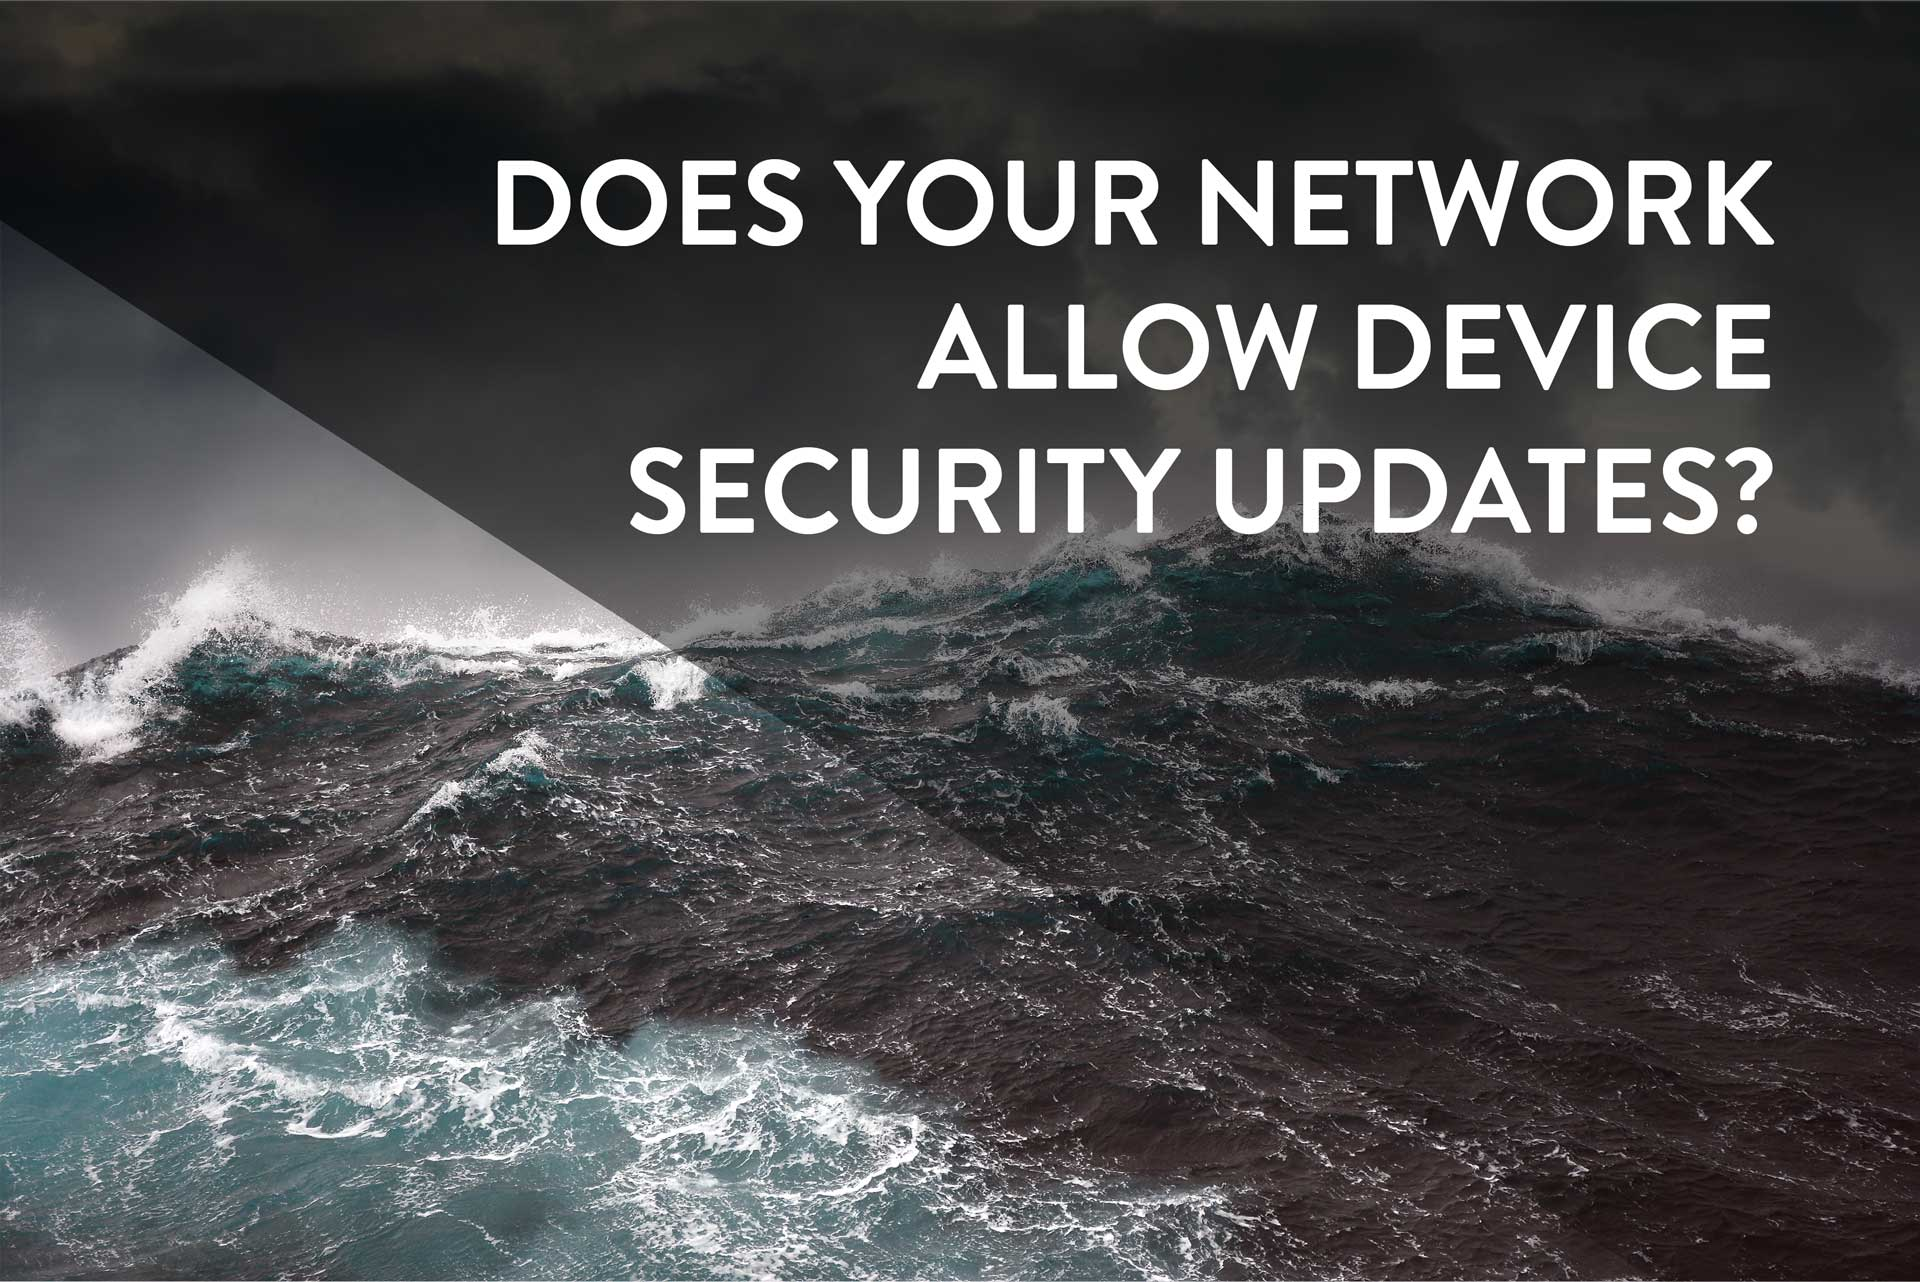 device security updates